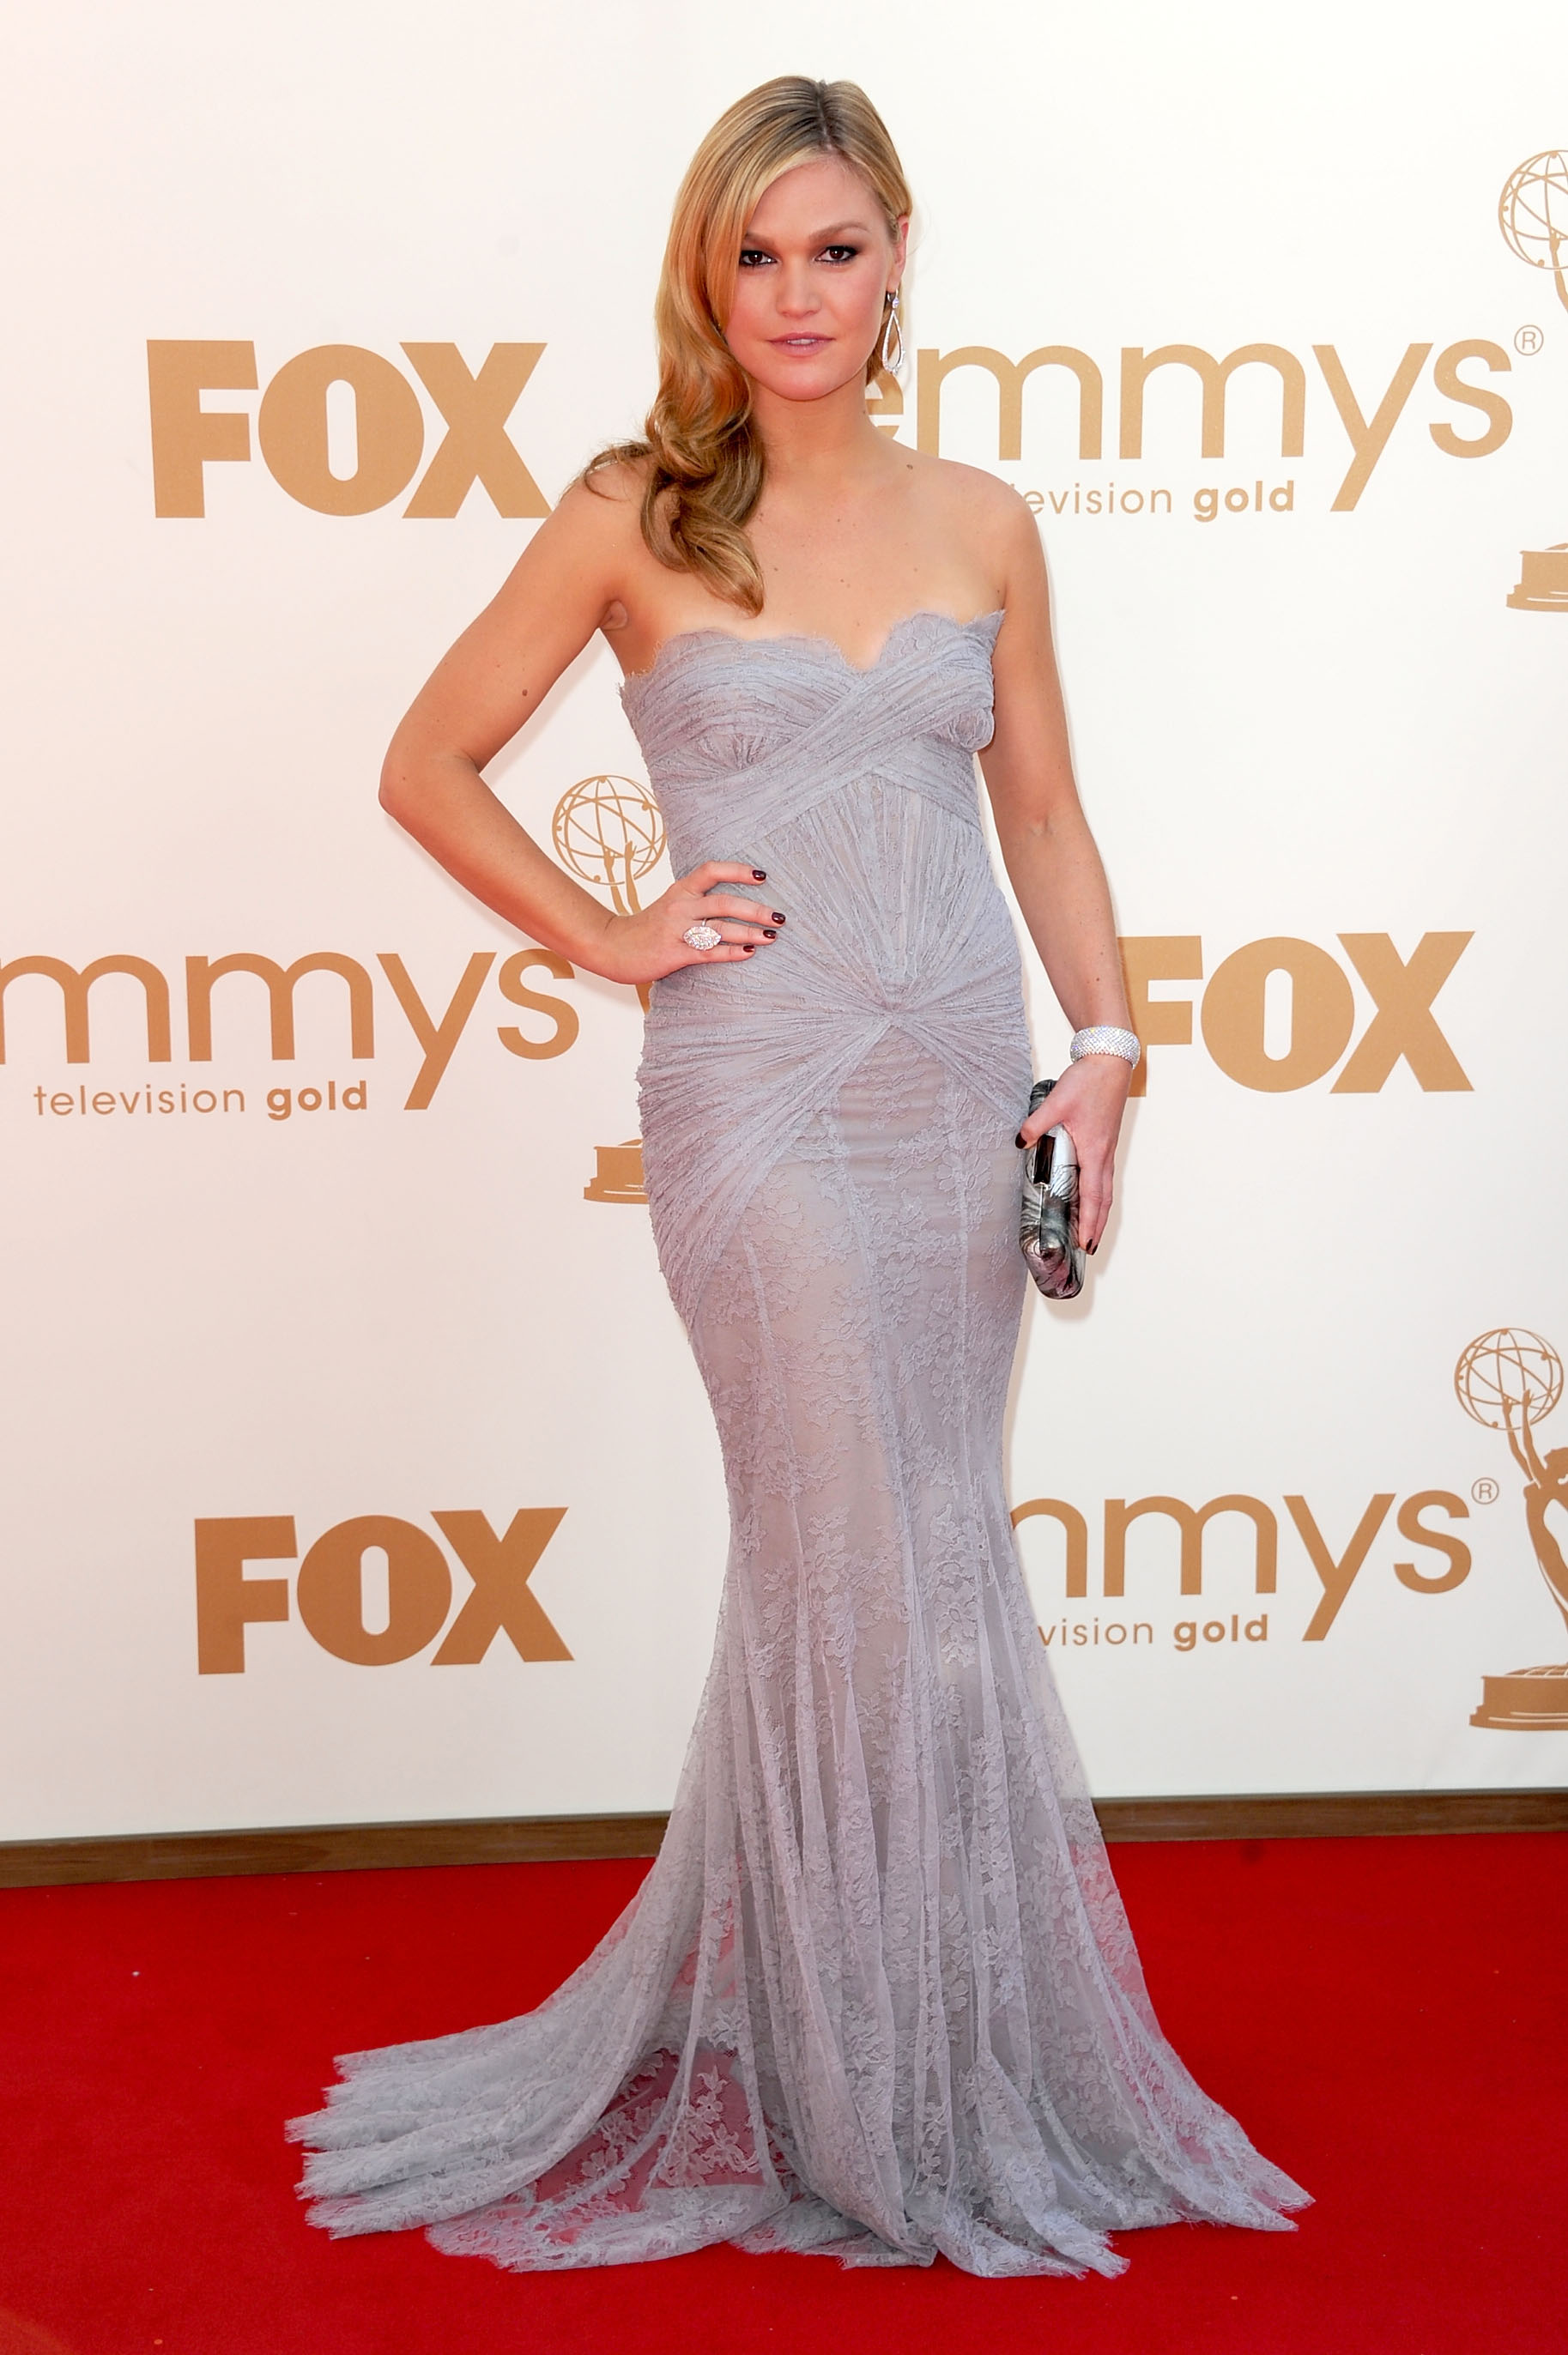 Julia Stiles at the 2011 Emmys.